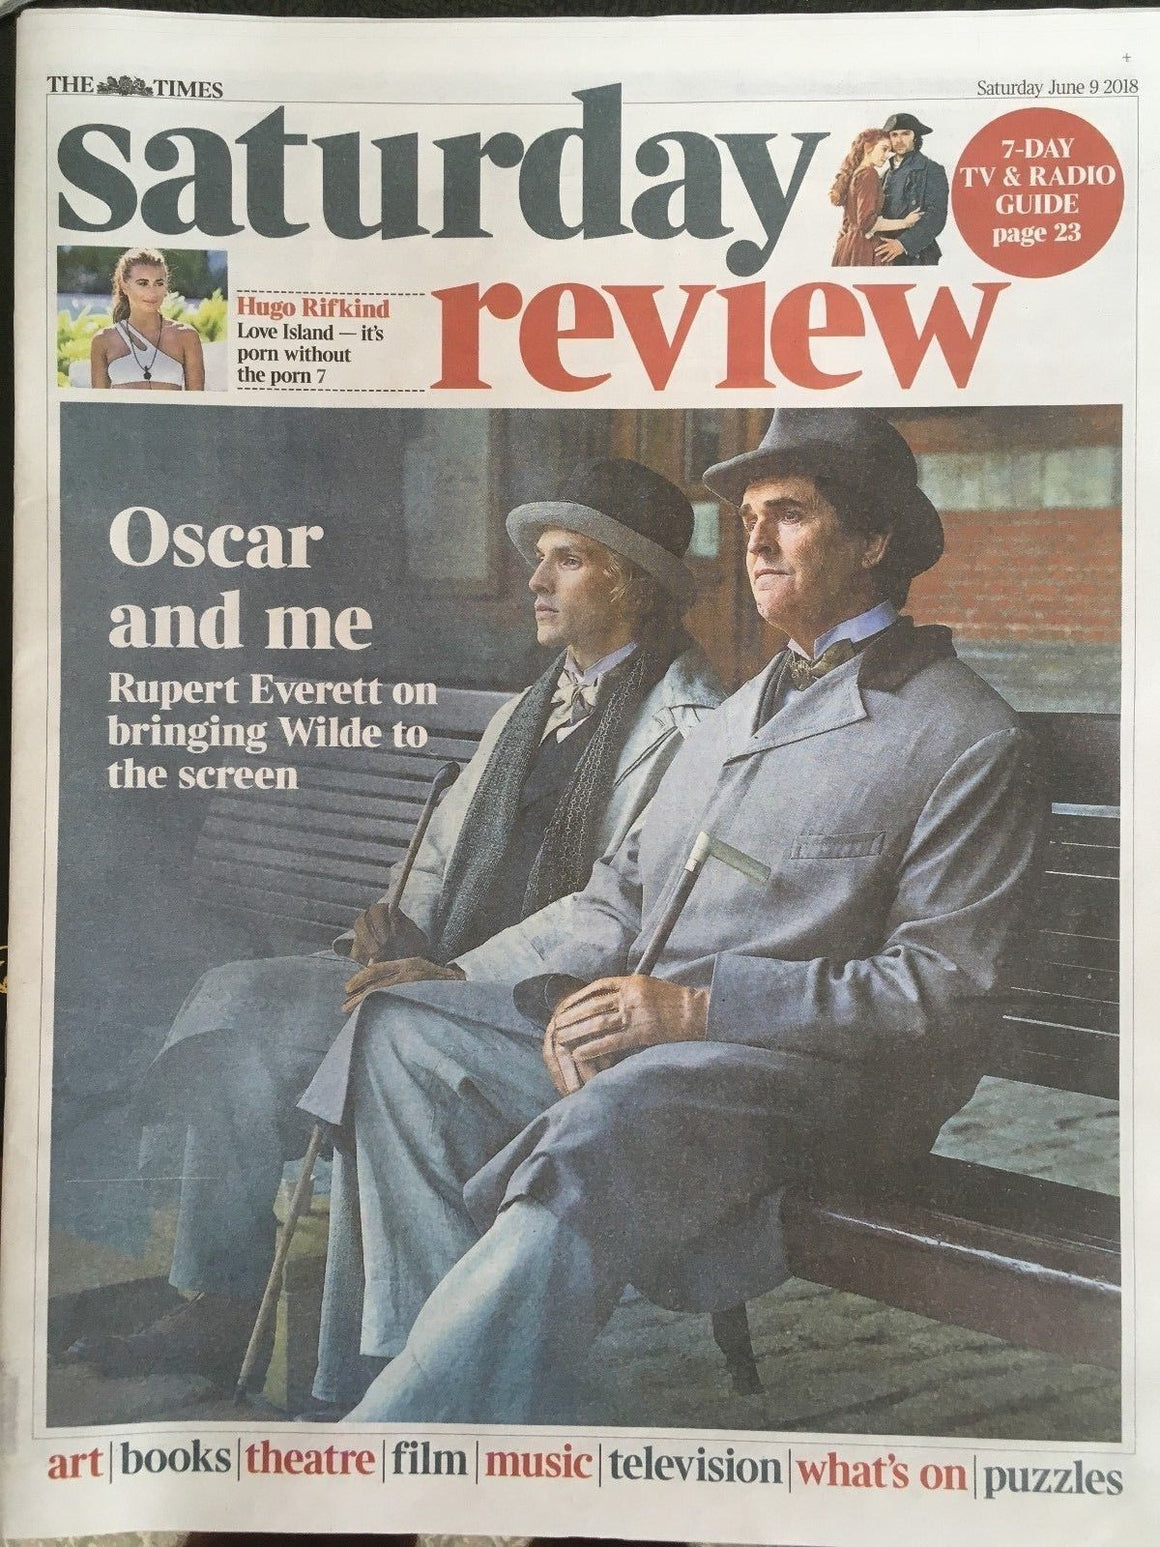 UK Times Review 9 June 2018: Rupert Everett (Wilde) Colin Morgan